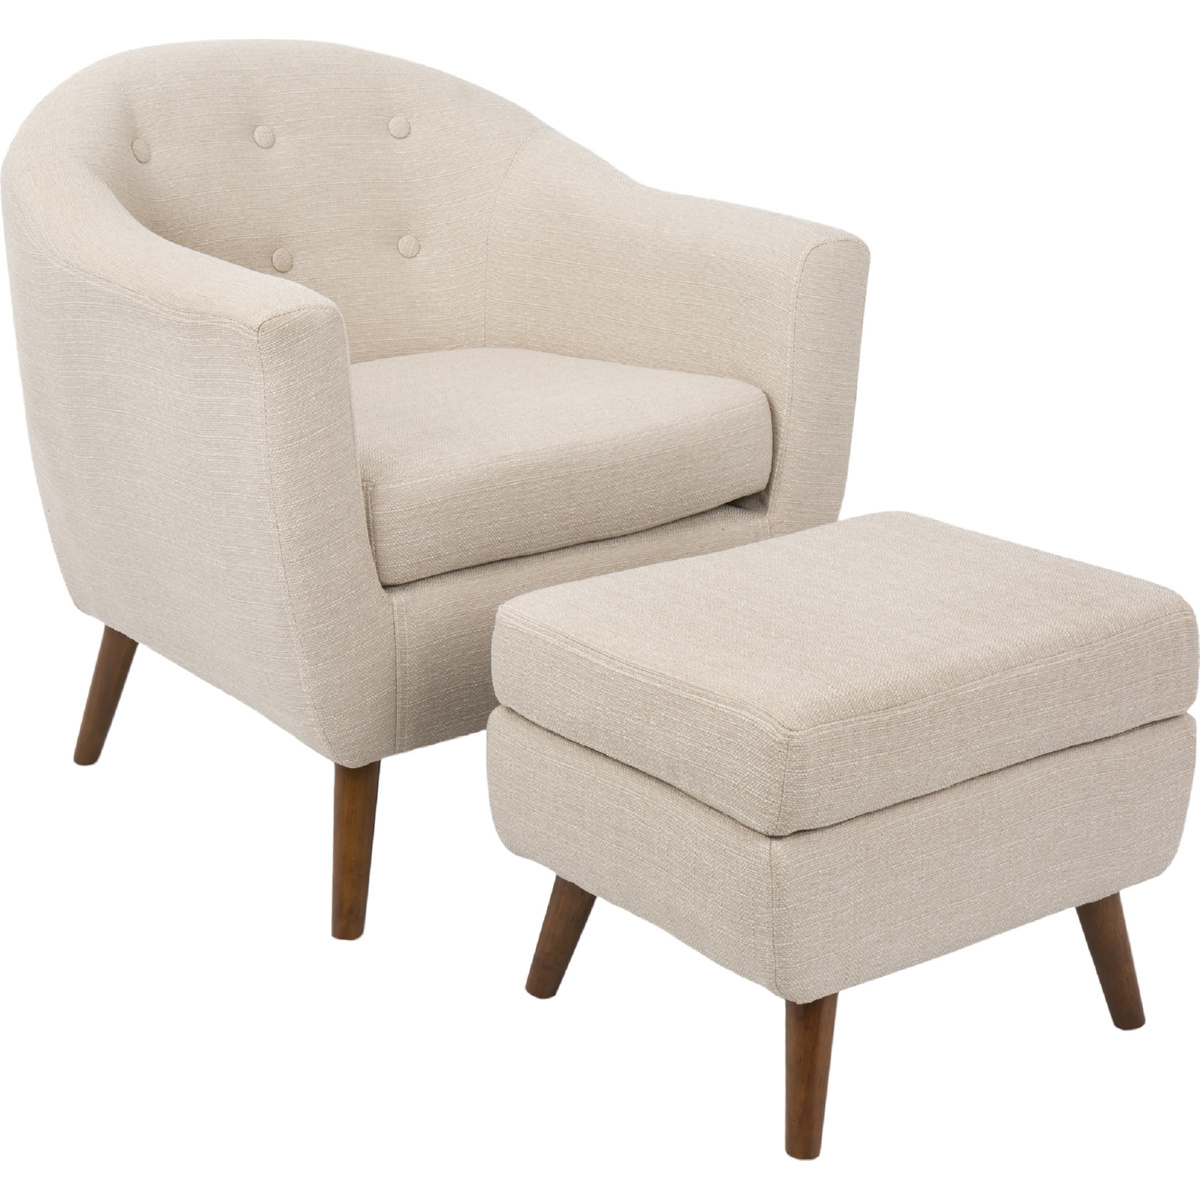 Strange Modern Accent Chair With Ottoman Jafari Ghola Pabps2019 Chair Design Images Pabps2019Com